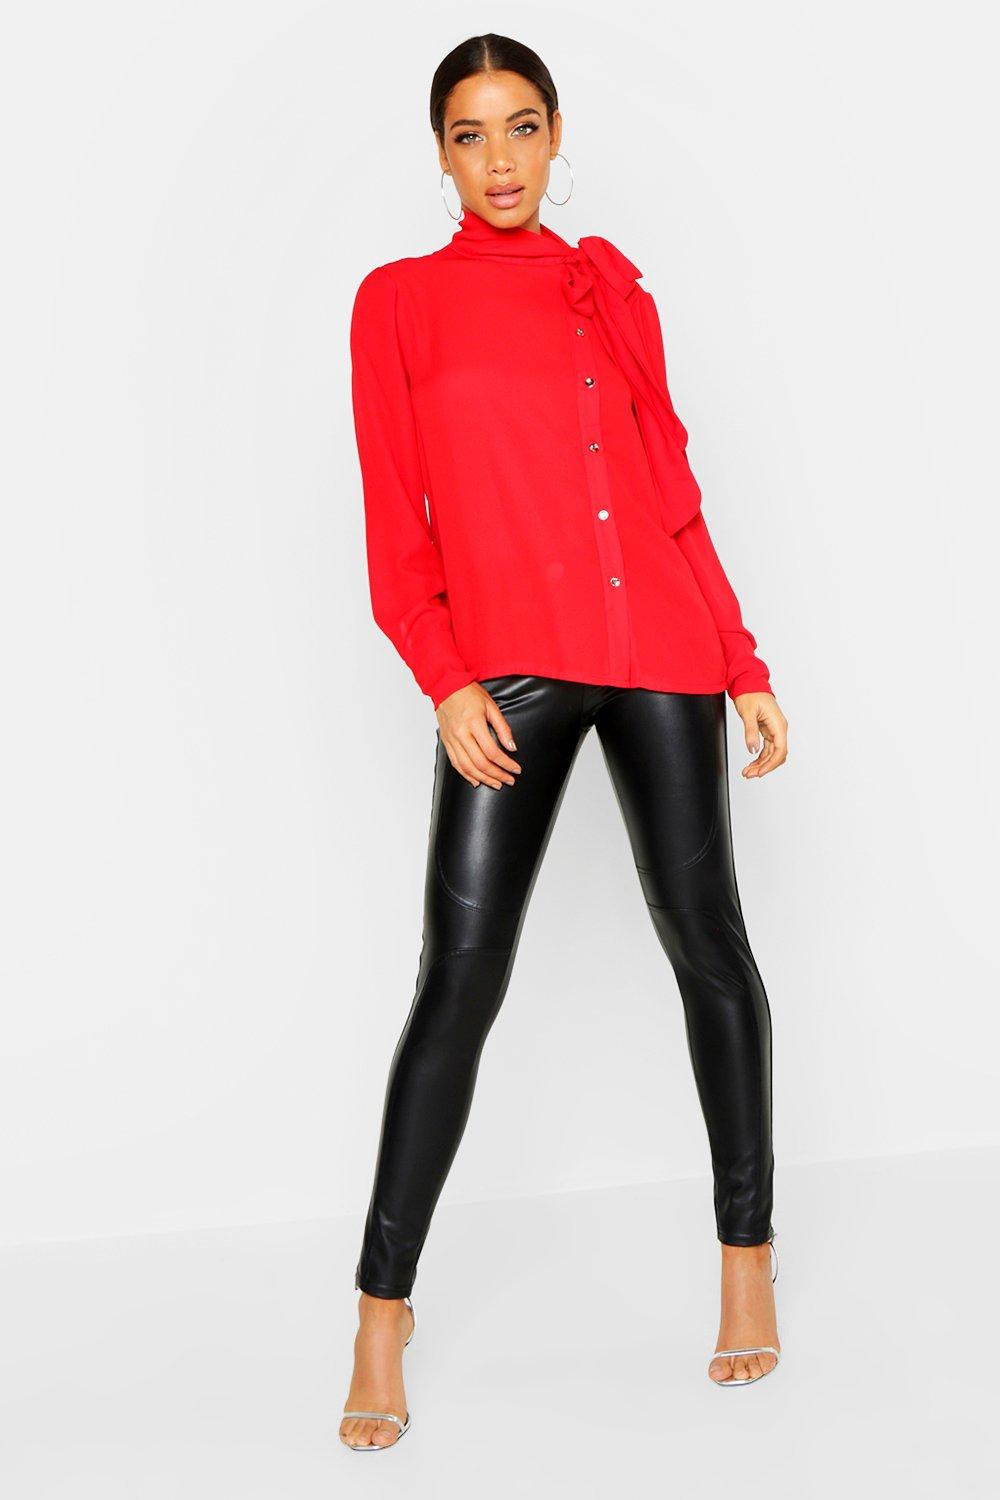 Купить Tops, Woven Tie Neck Button Detail Blouse, boohoo